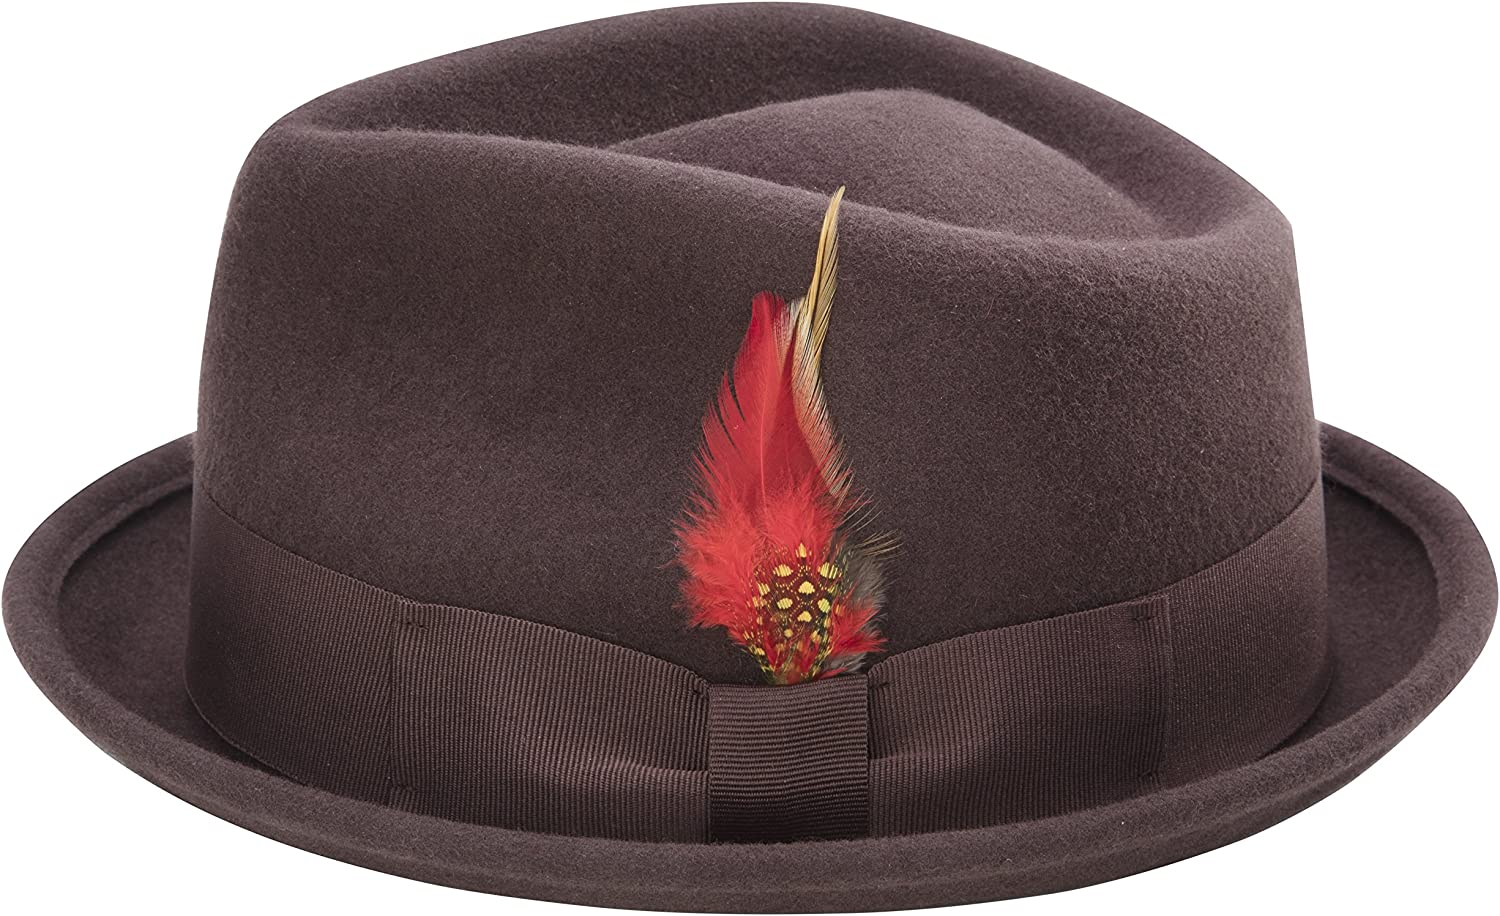 MONTIQUE Bogart Stingy Brim Fine Heather Wool Felt Teardrop Dent Hat with Feather H-54